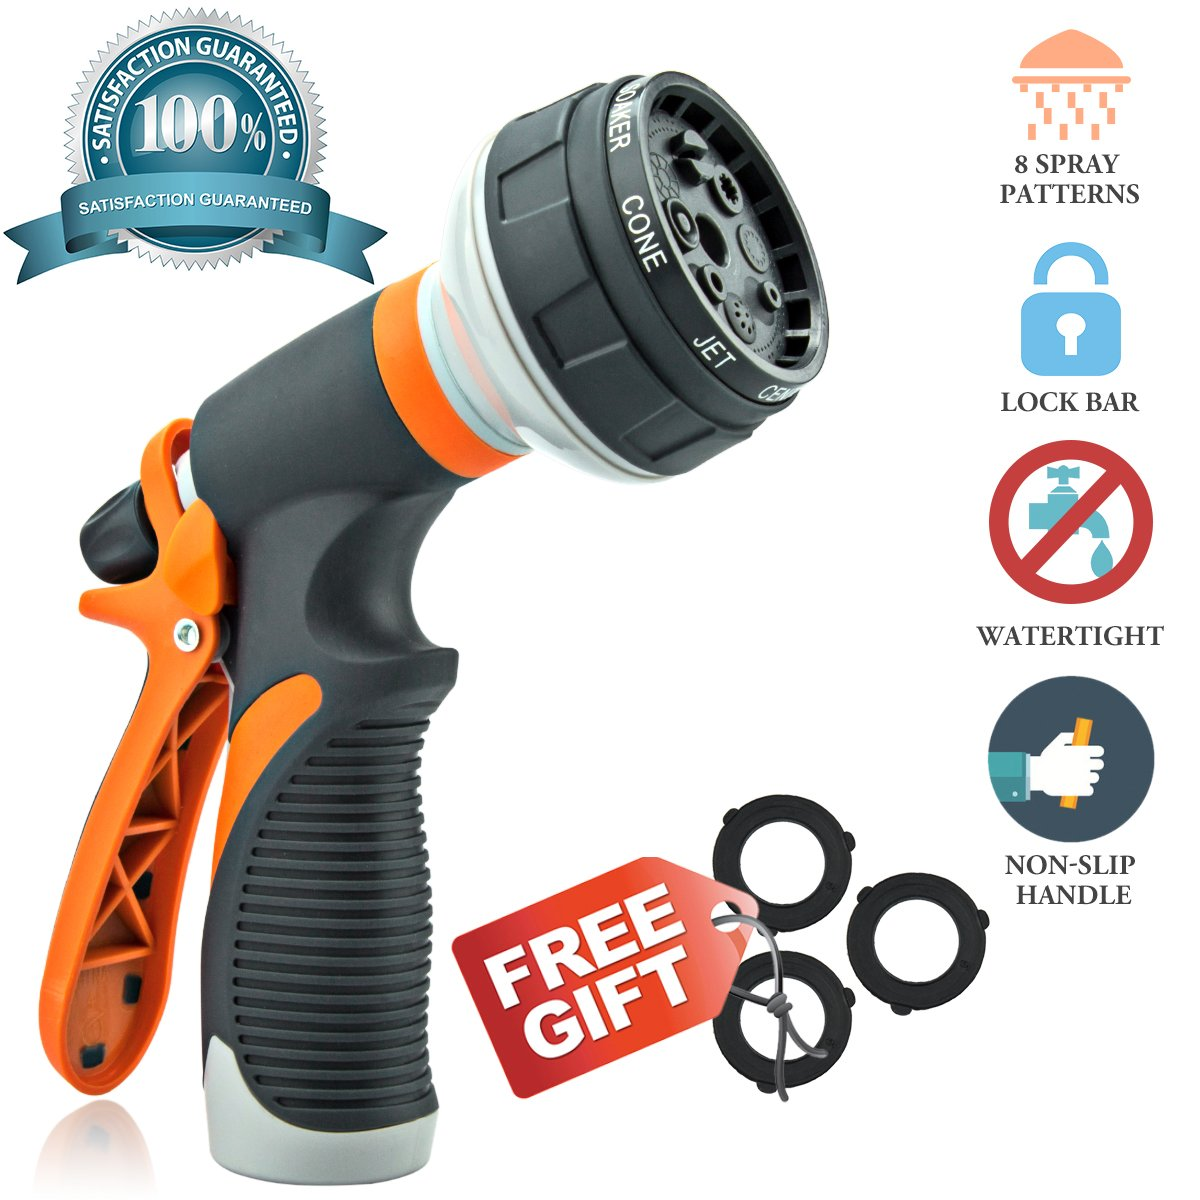 Hose Nozzle Garden Hose Nozzle Hose Spray Nozzle Leak Free High Pressure Heavy Duty 8 Pattern For Watering Plant Washing Cars Pets Shower